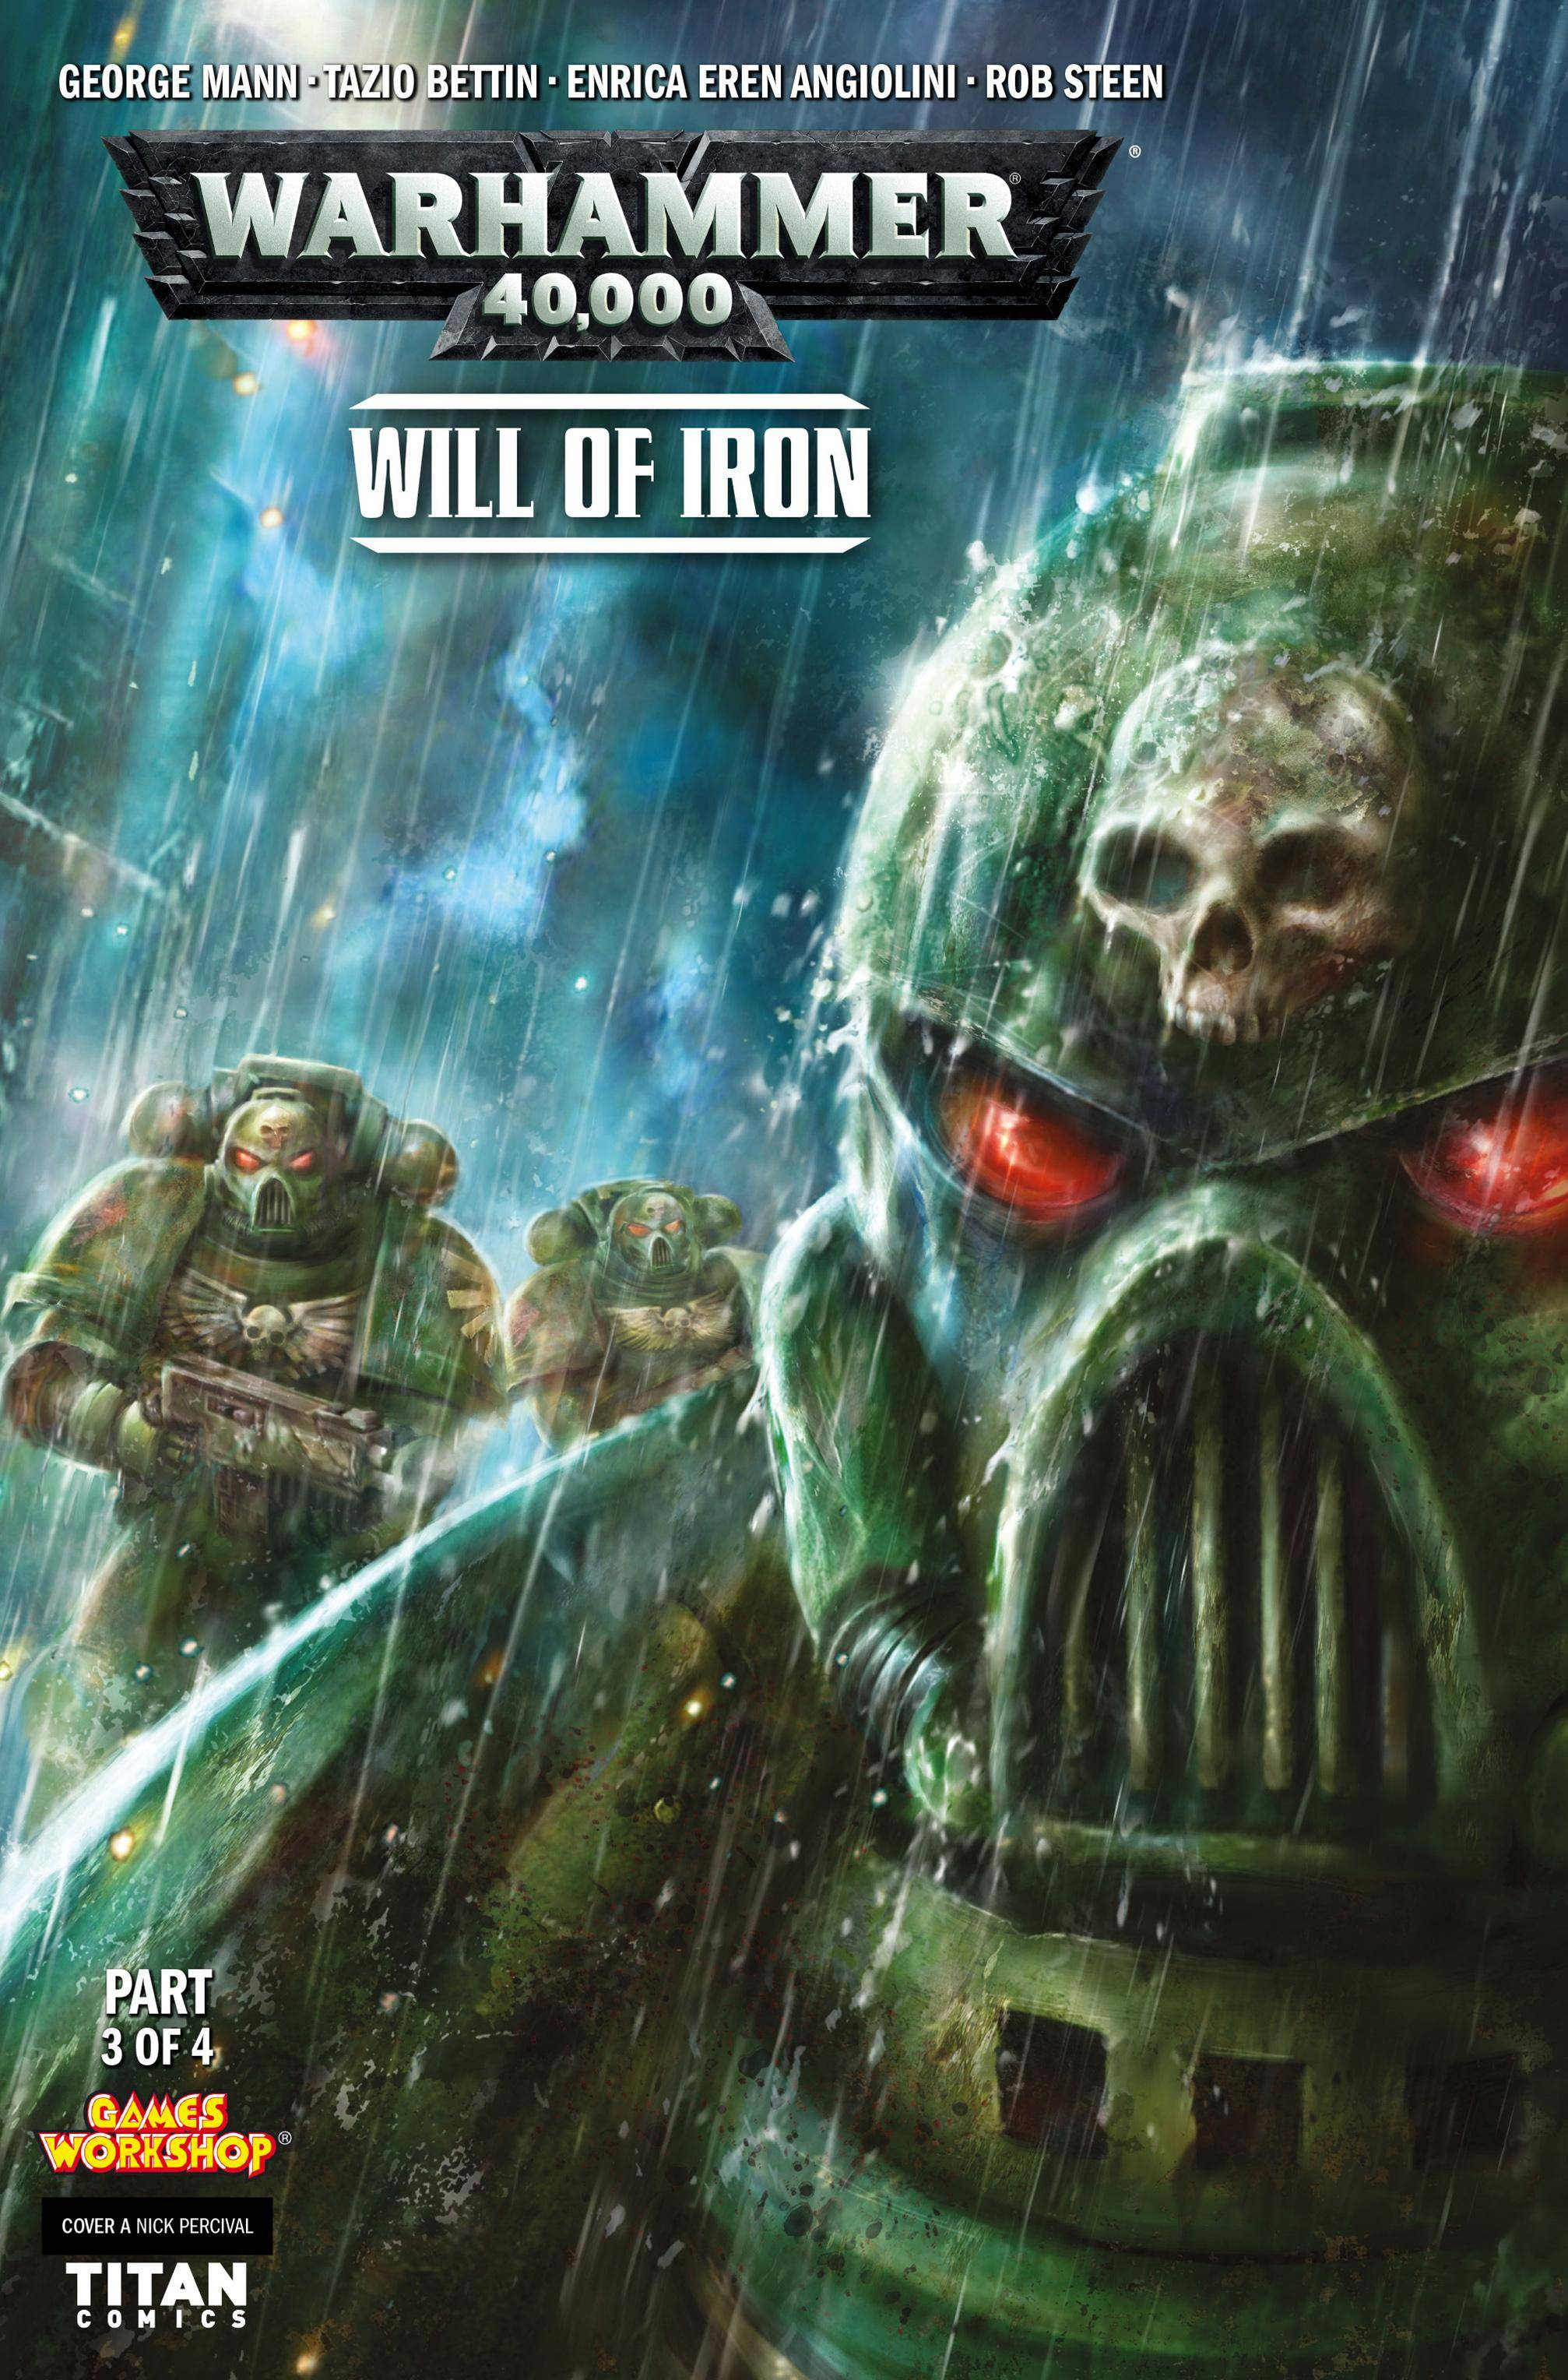 Warhammer 40000 - Will of Iron 003 2016 4 covers digital dargh-Empire